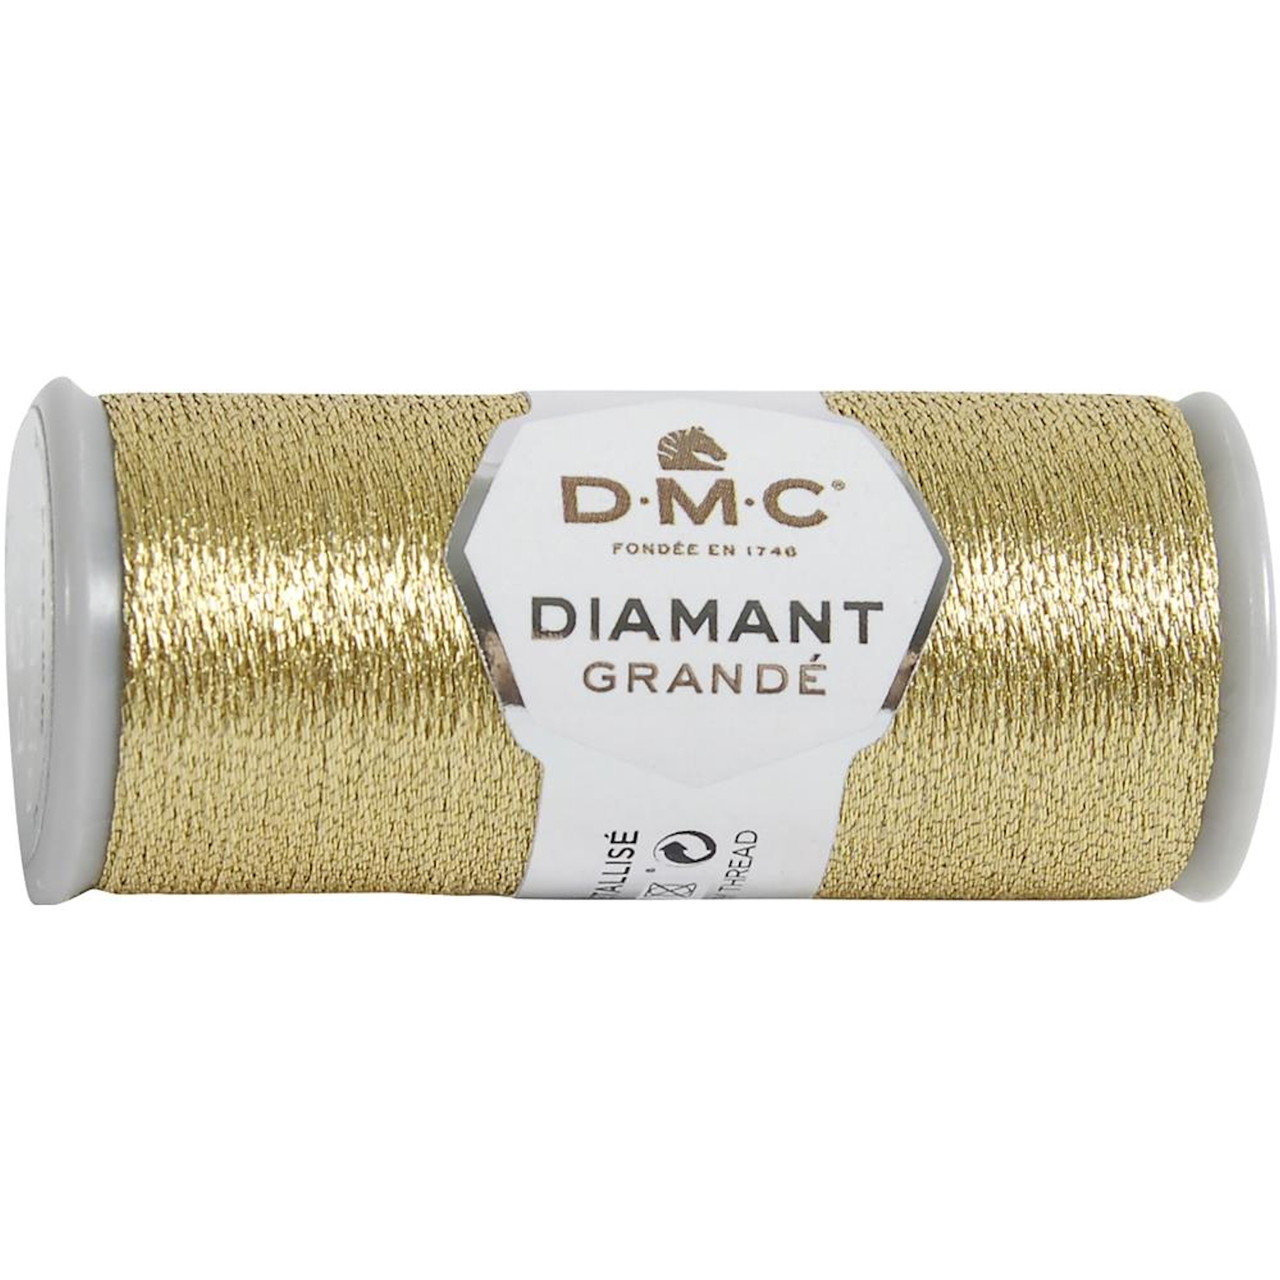 DMC - 21.8 Yard Spool of Light Gold Diamant Grande Metallic Thread #G3821